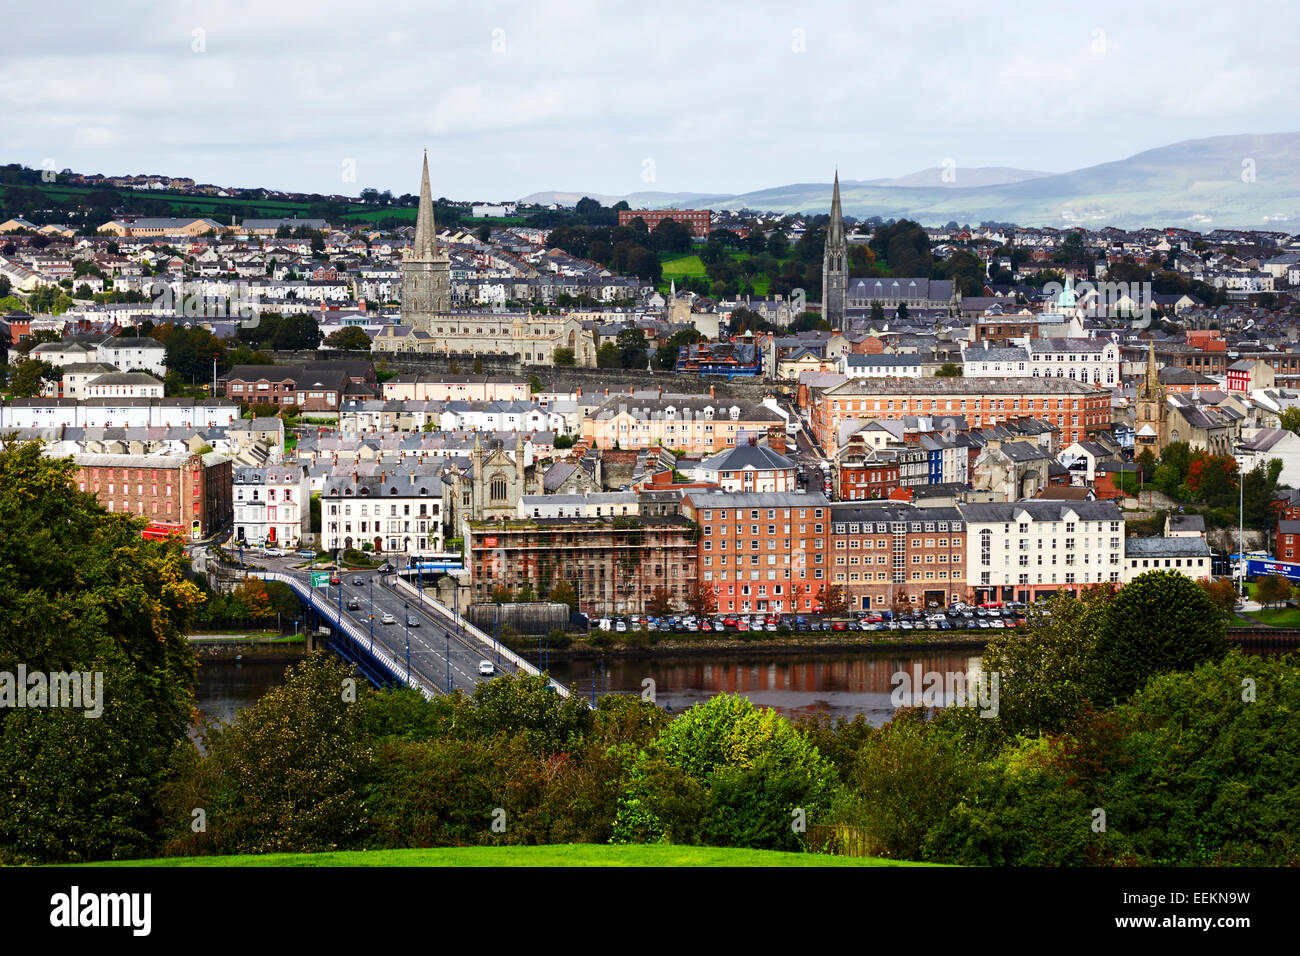 derry londonderry city center landscape view northern ireland - Stock Image